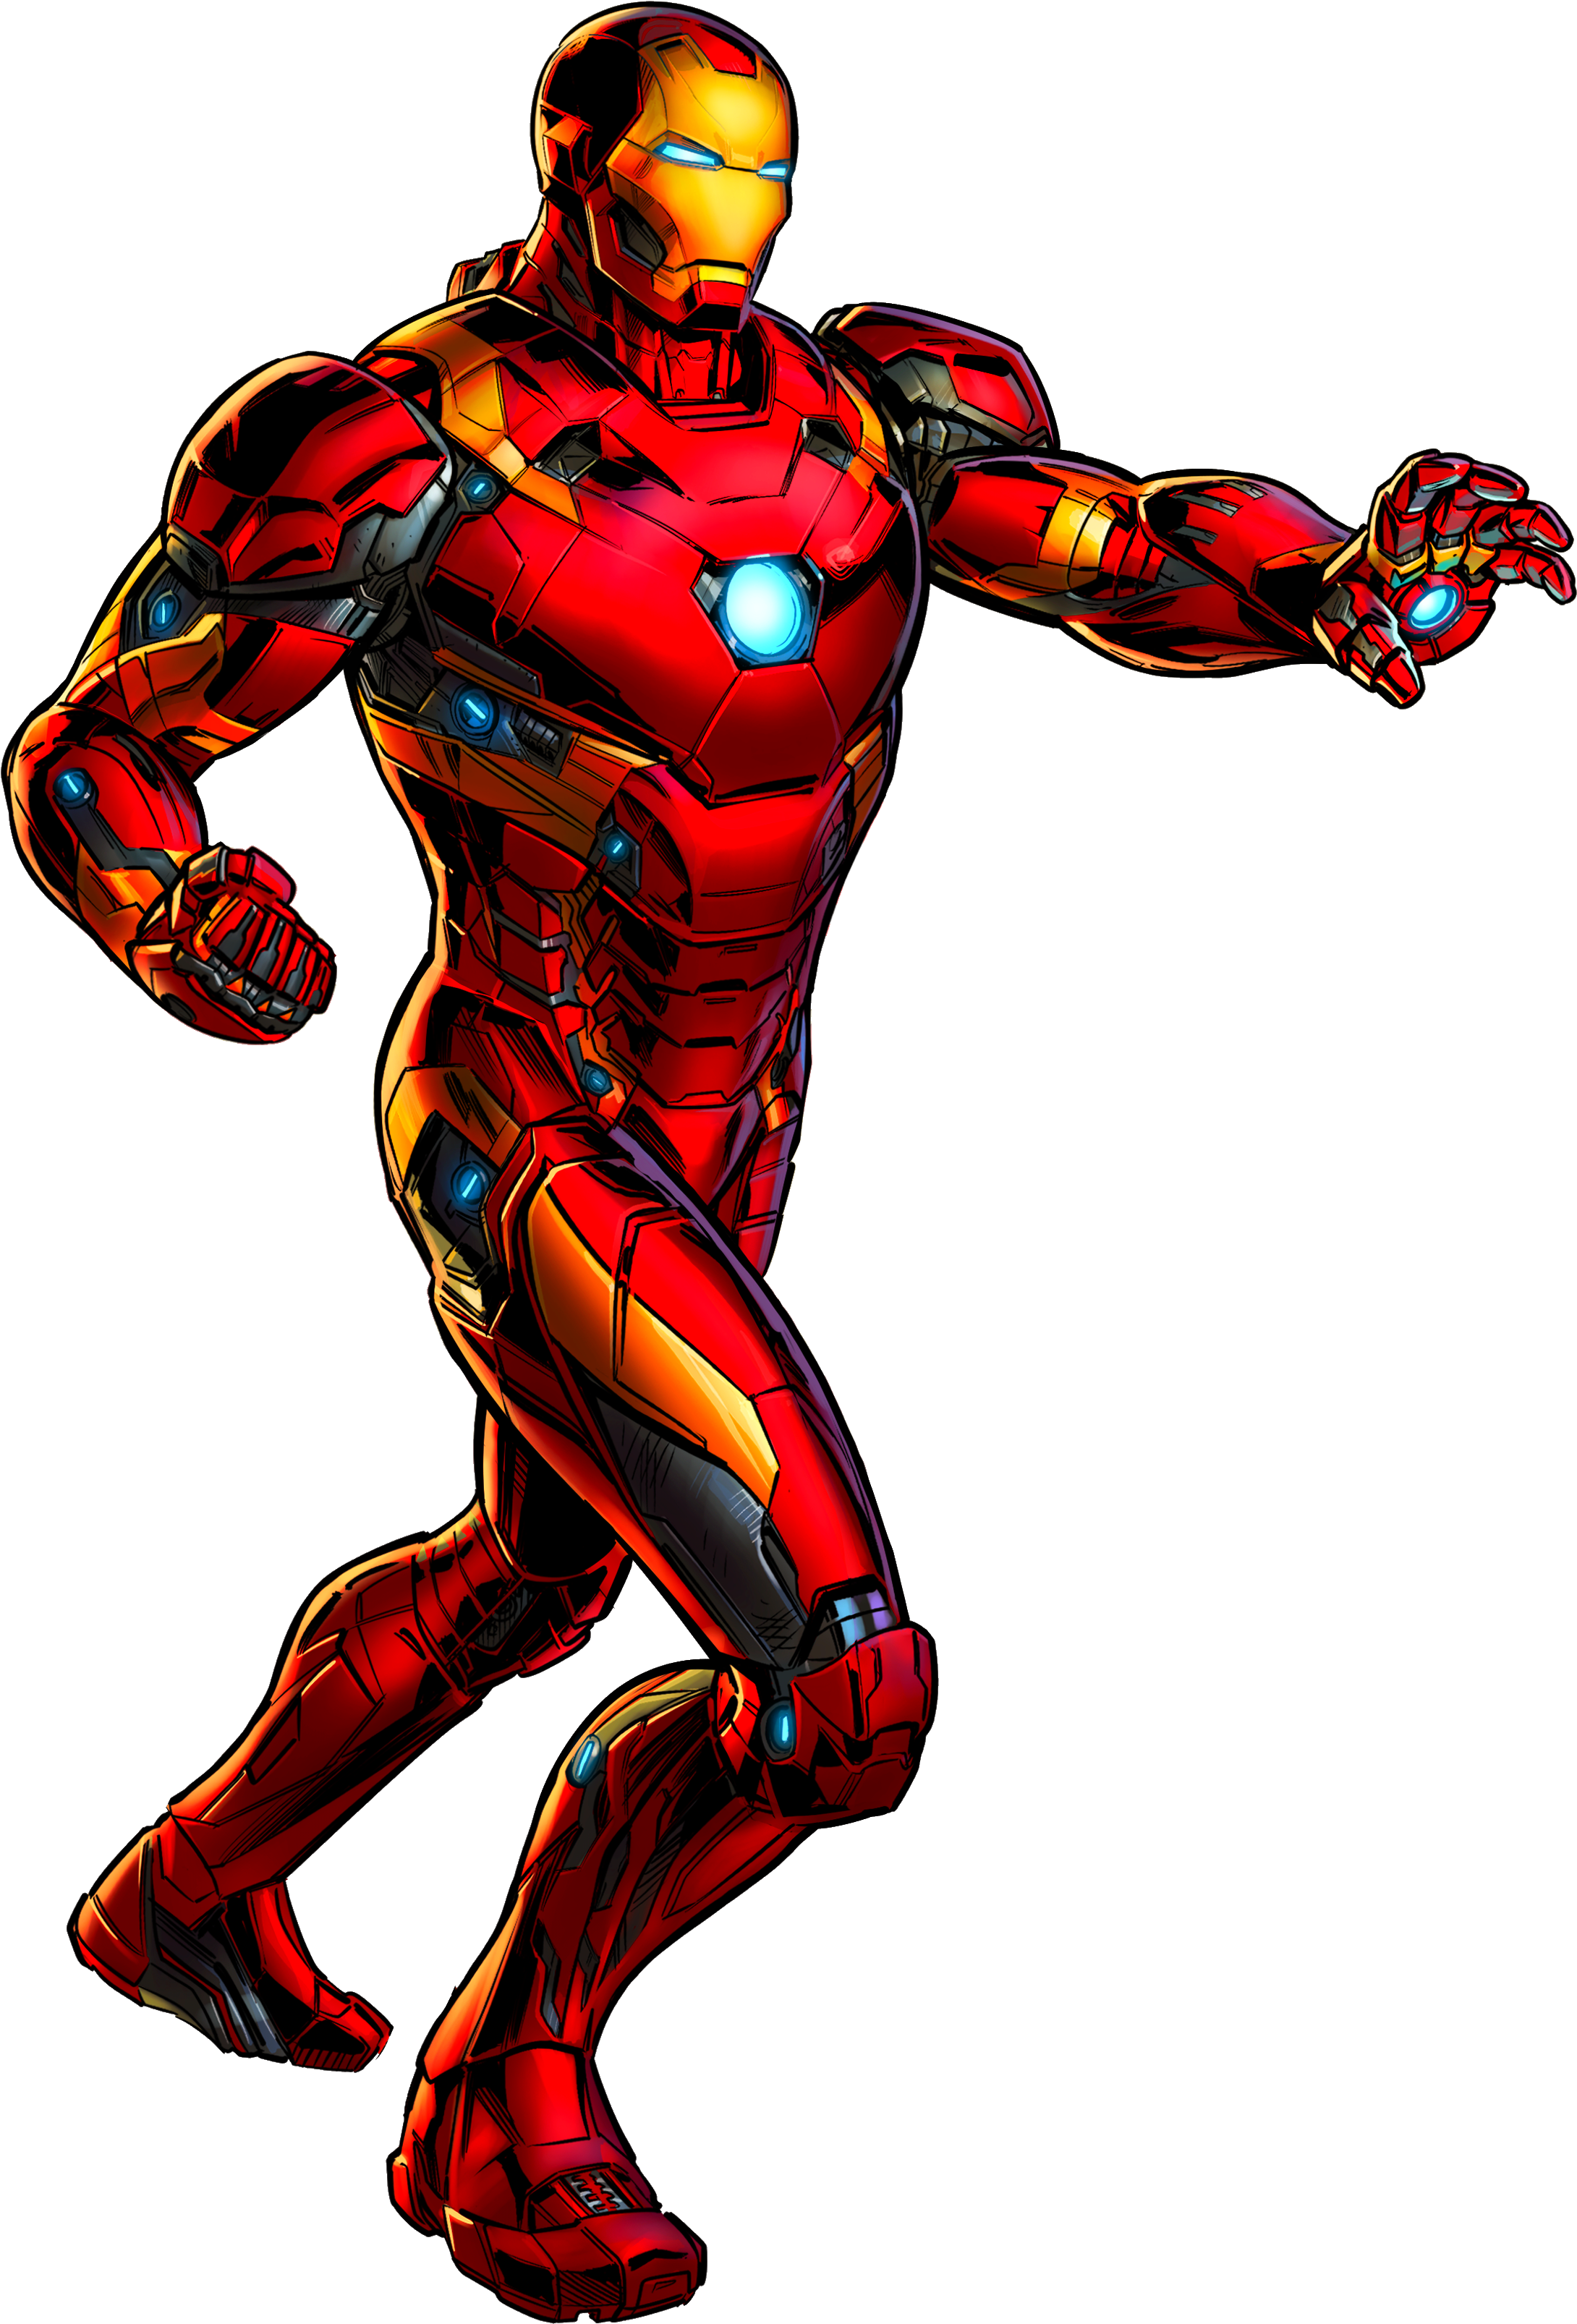 Iron Man Code In Roblox - All Robux Promo Codes 2019 ...